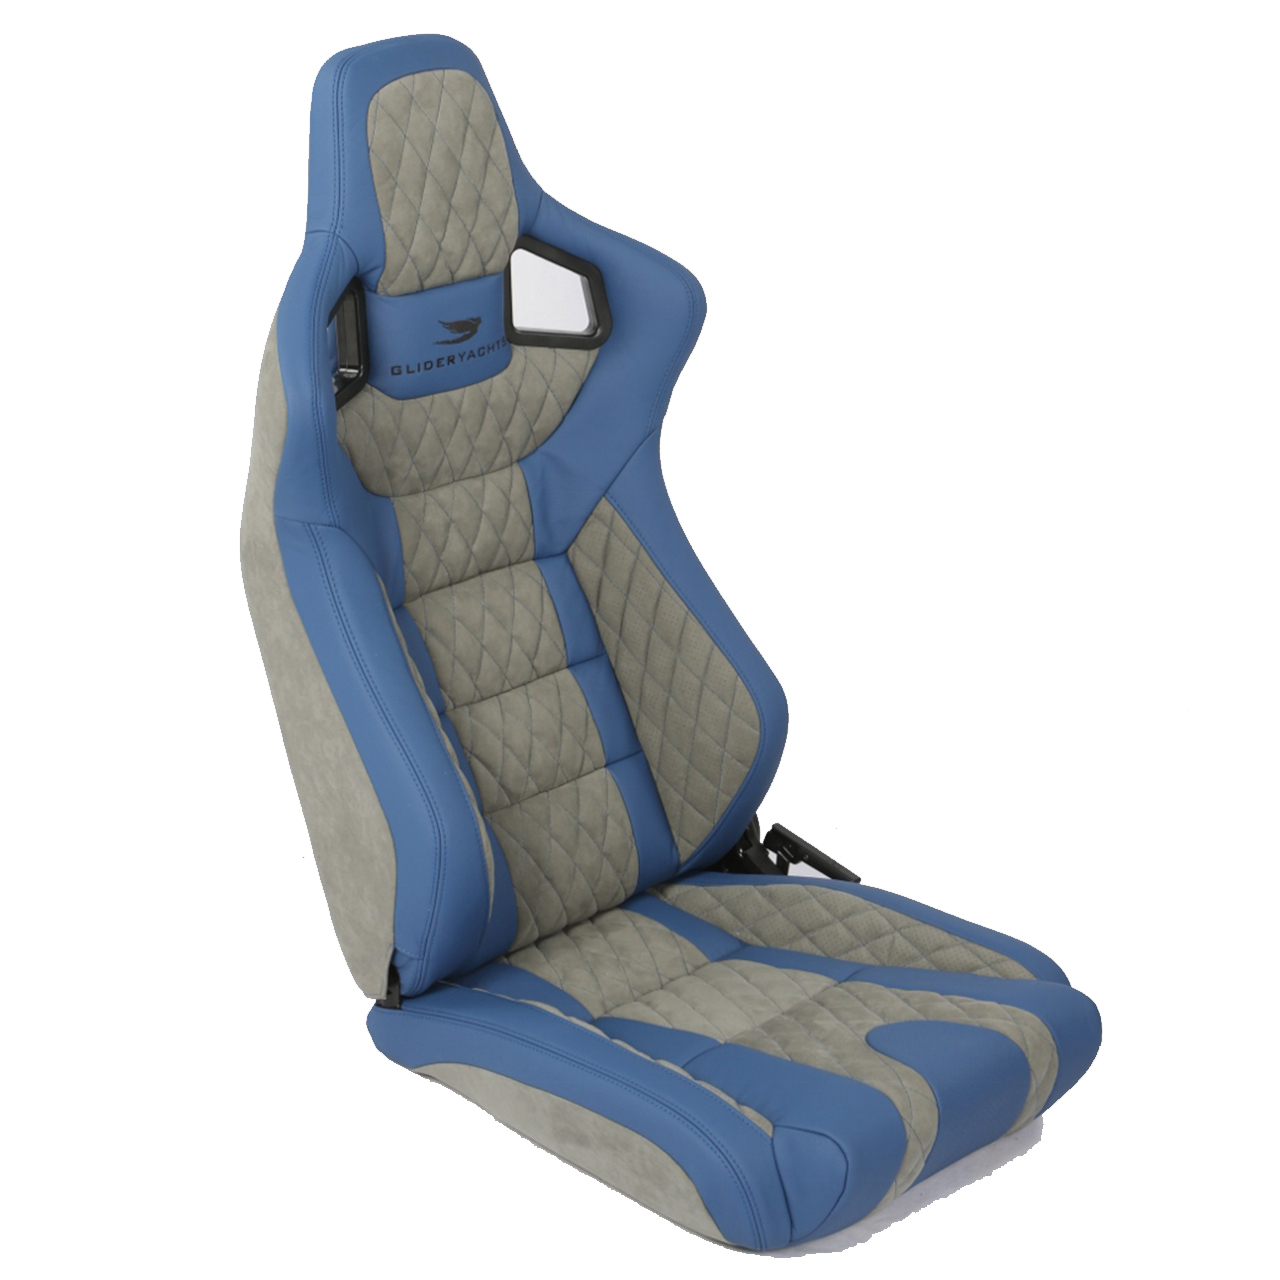 Corbeau Sportline RRS Reclining Race Seat with Blue/Grey Custom Elite Upgrade